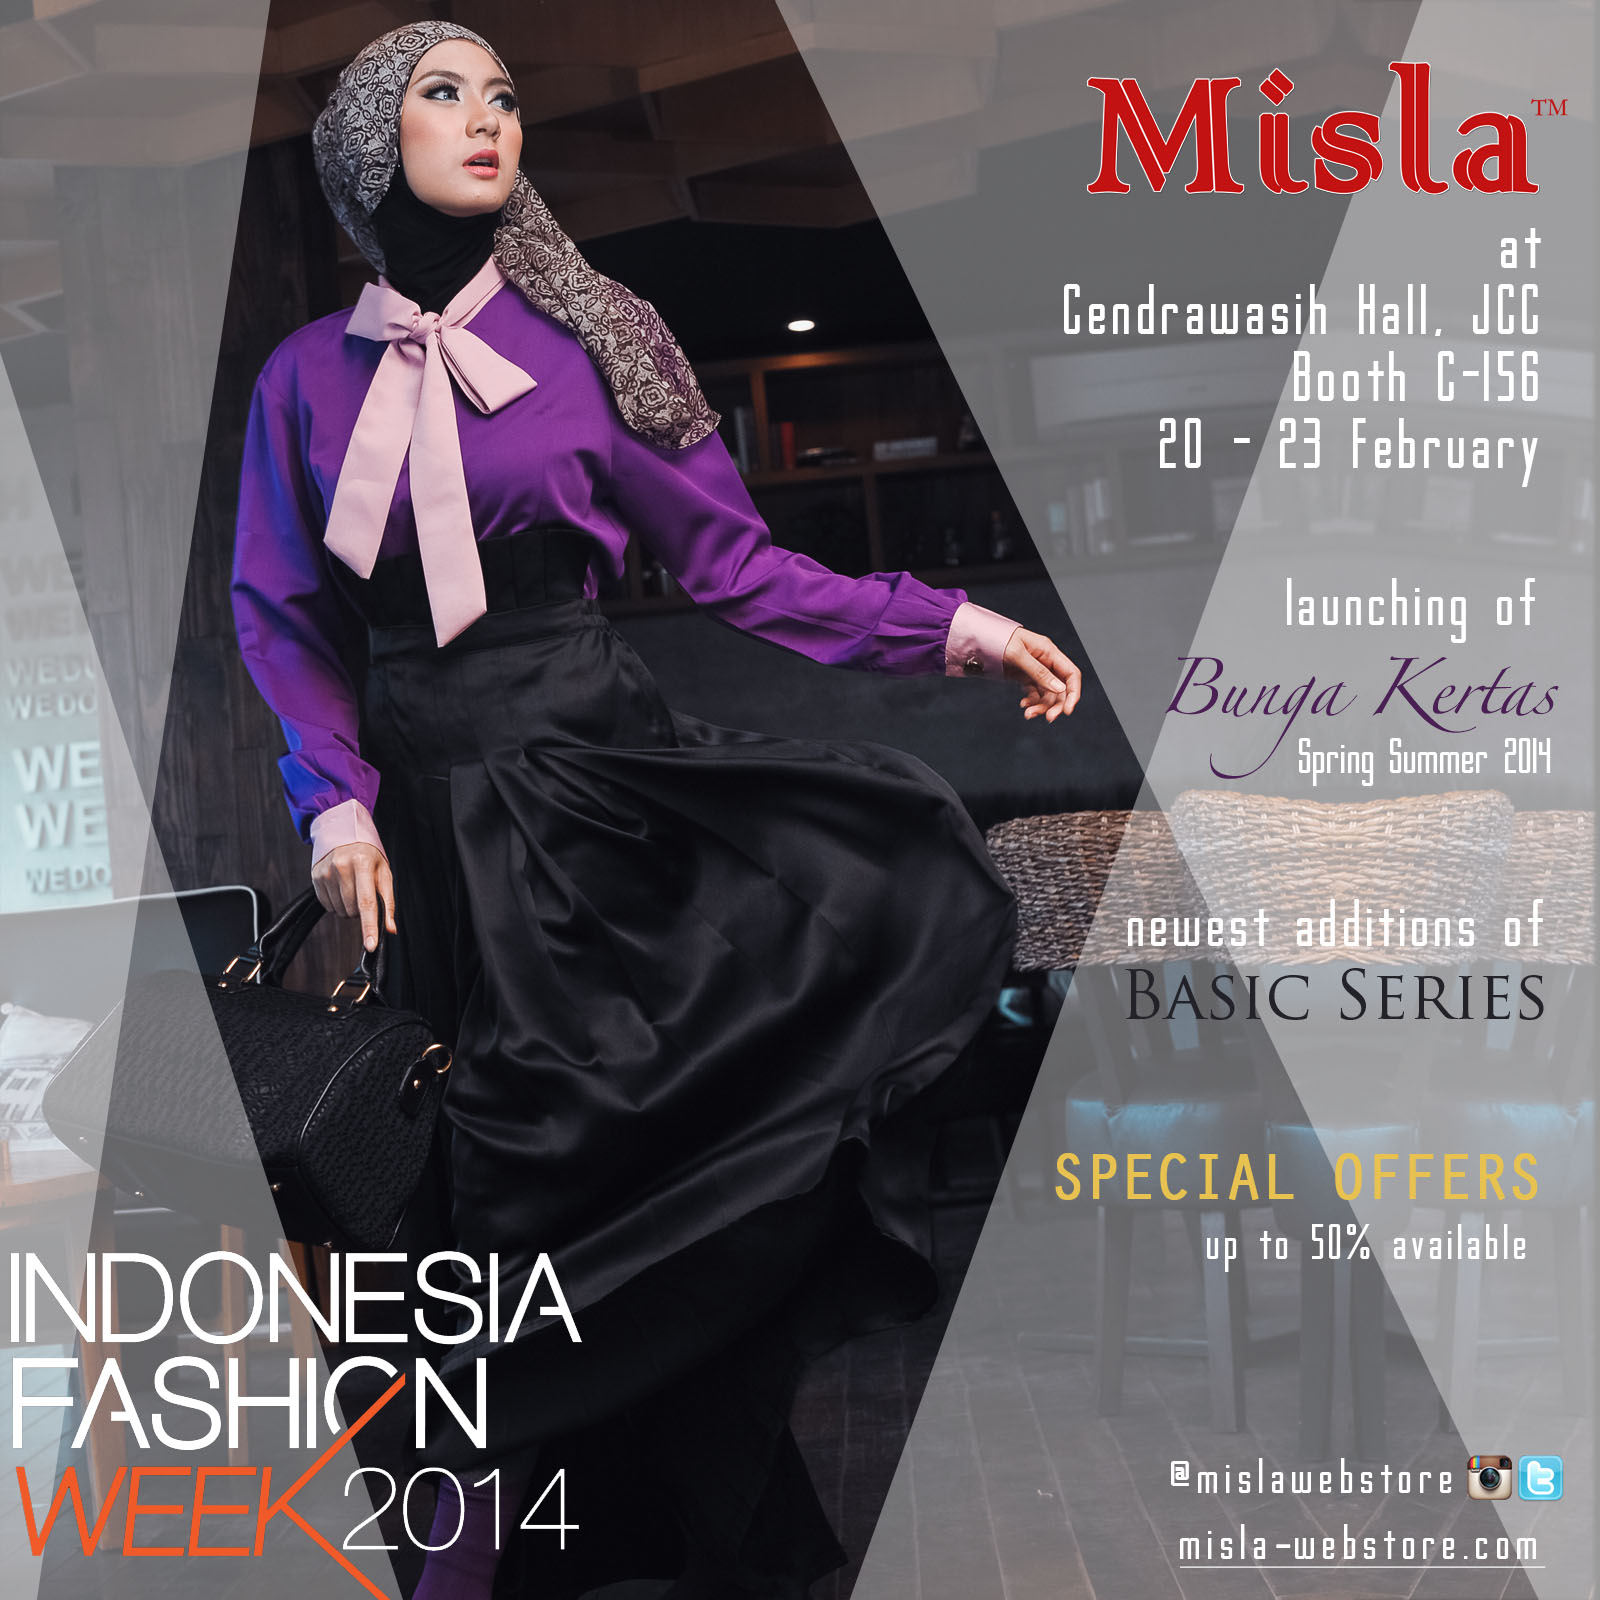 banner-ig MISLA at Indonesia Fashion Week 2014